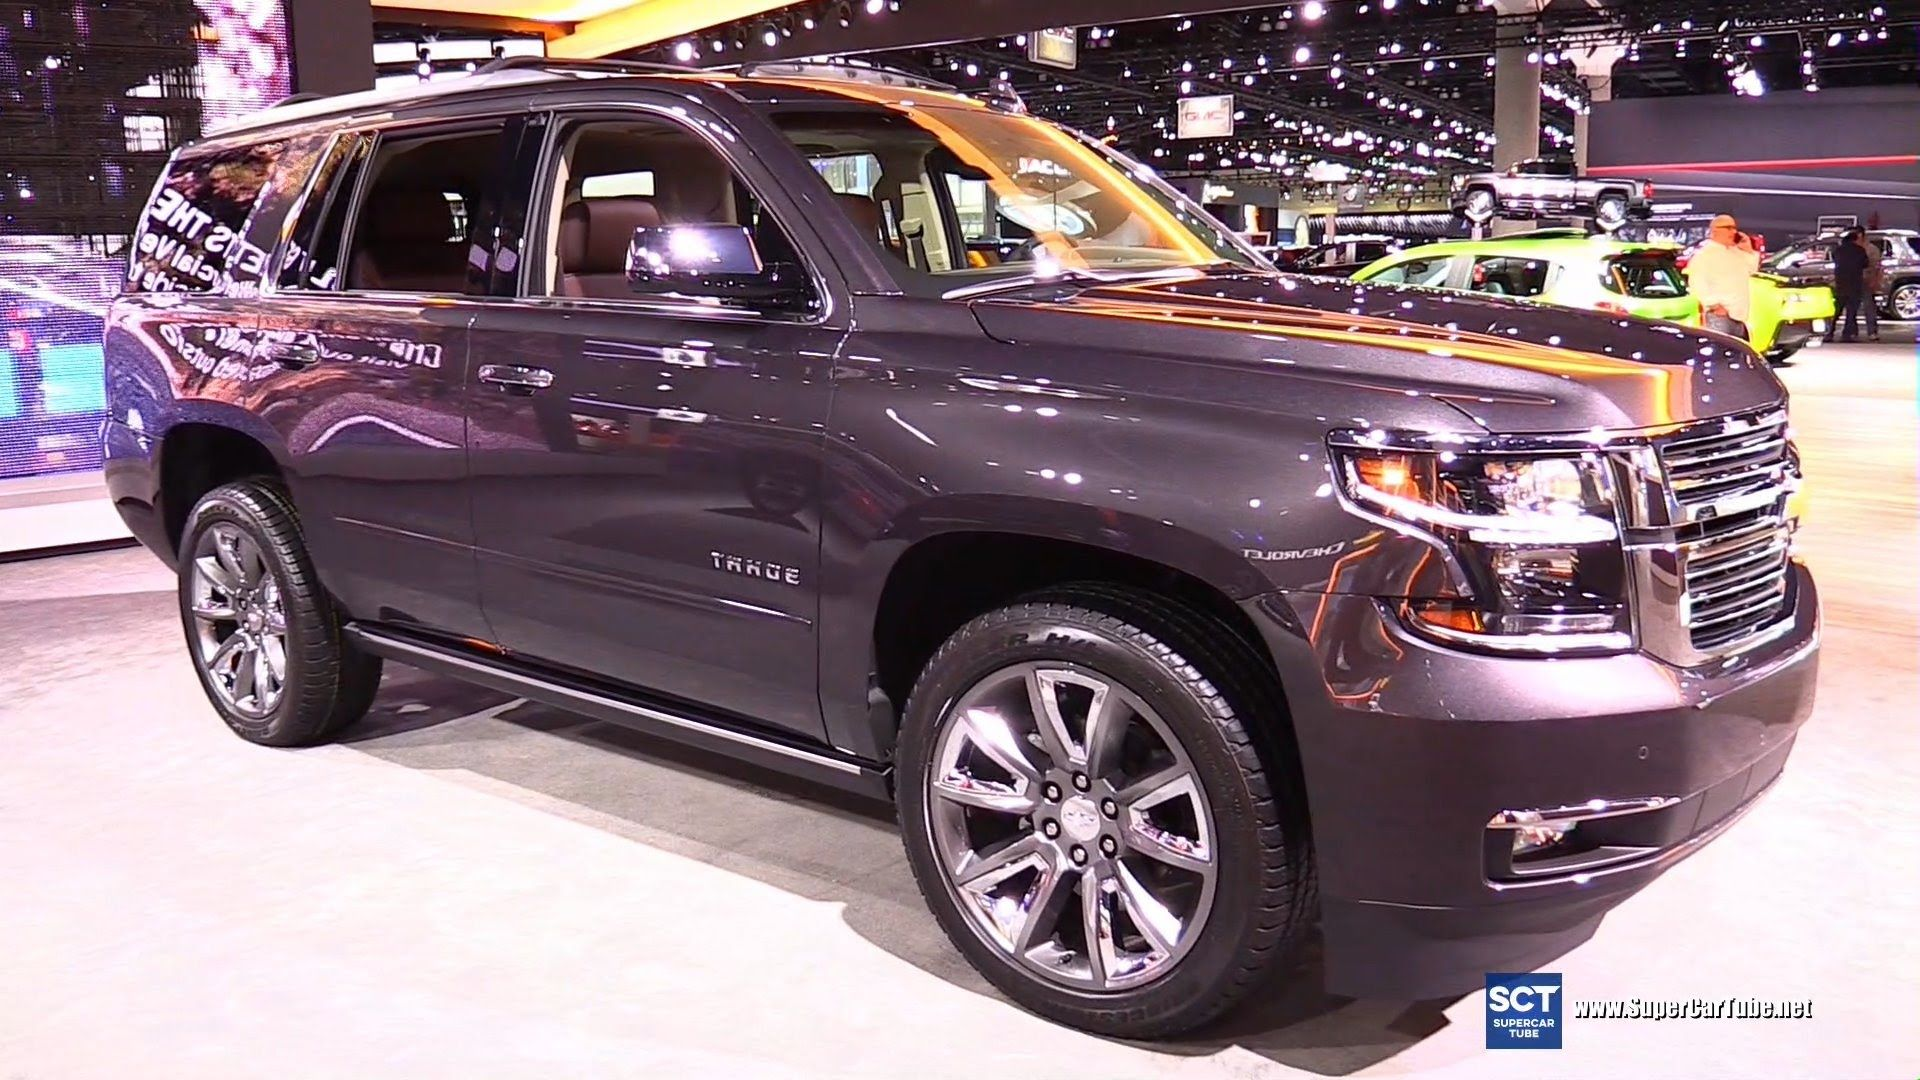 2016 chevrolet tahoe ltz accessories 3276 tahoes and suburbans pinterest chevrolet tahoe chevrolet and american muscle cars